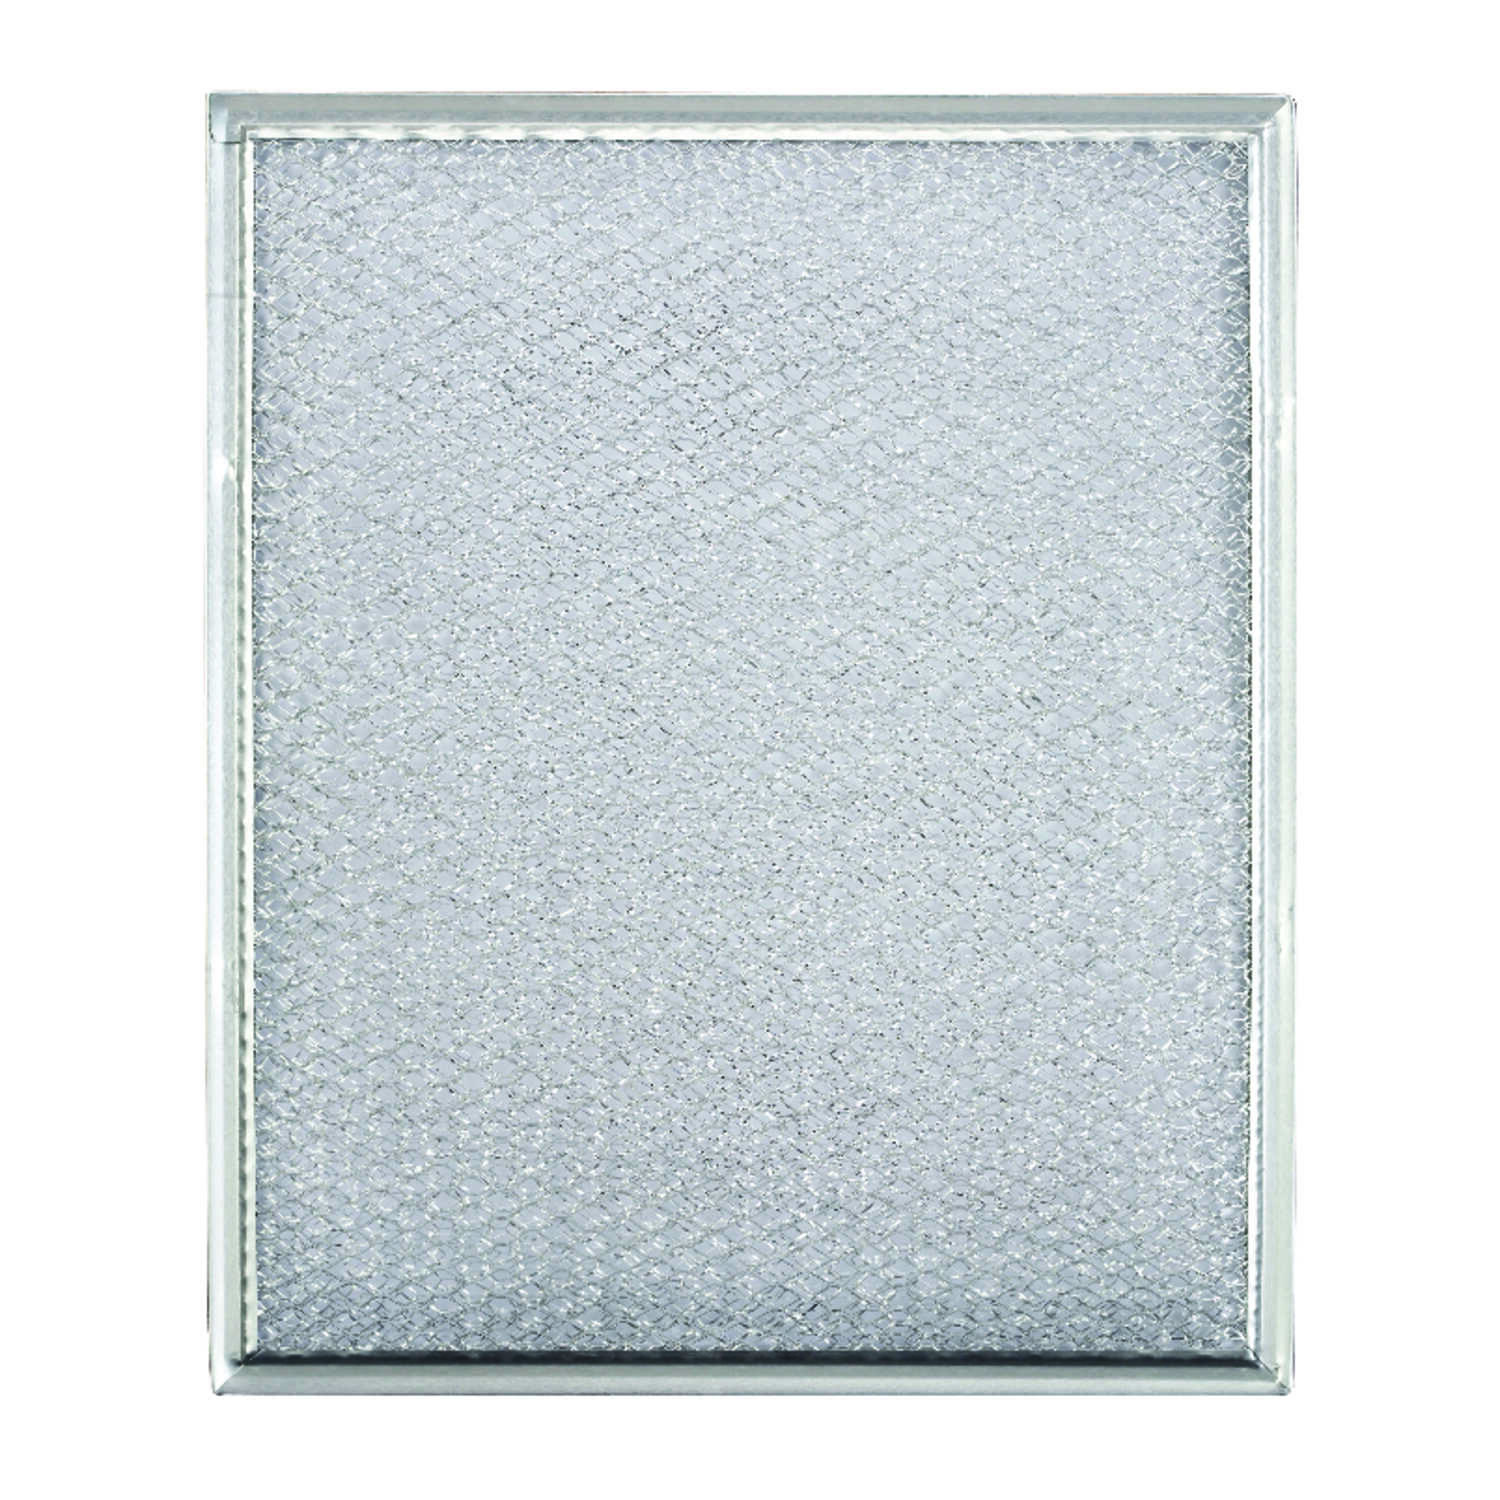 Broan  8-3/4 in. W Range Hood Filter  Silver